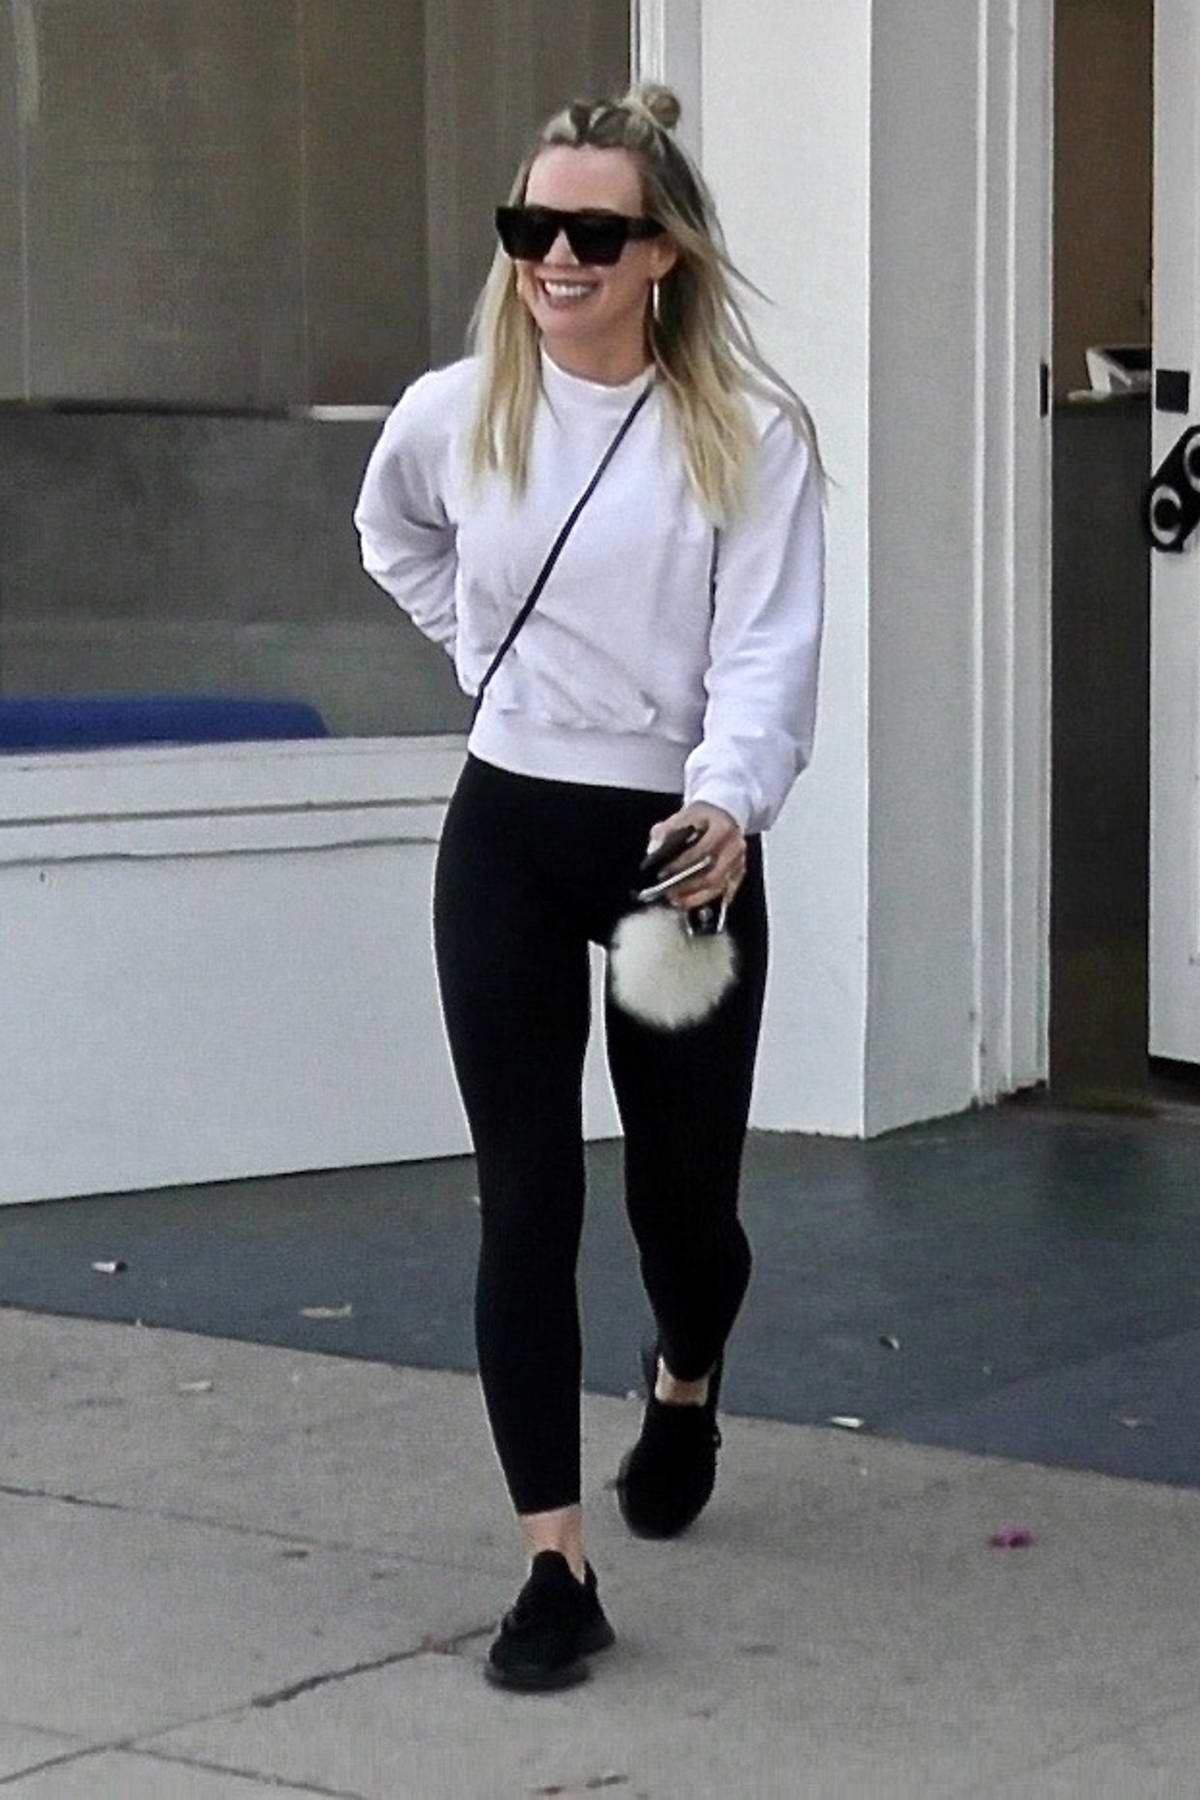 Hilary Duff is all smiles as she exits a nail salon in Studio City, California